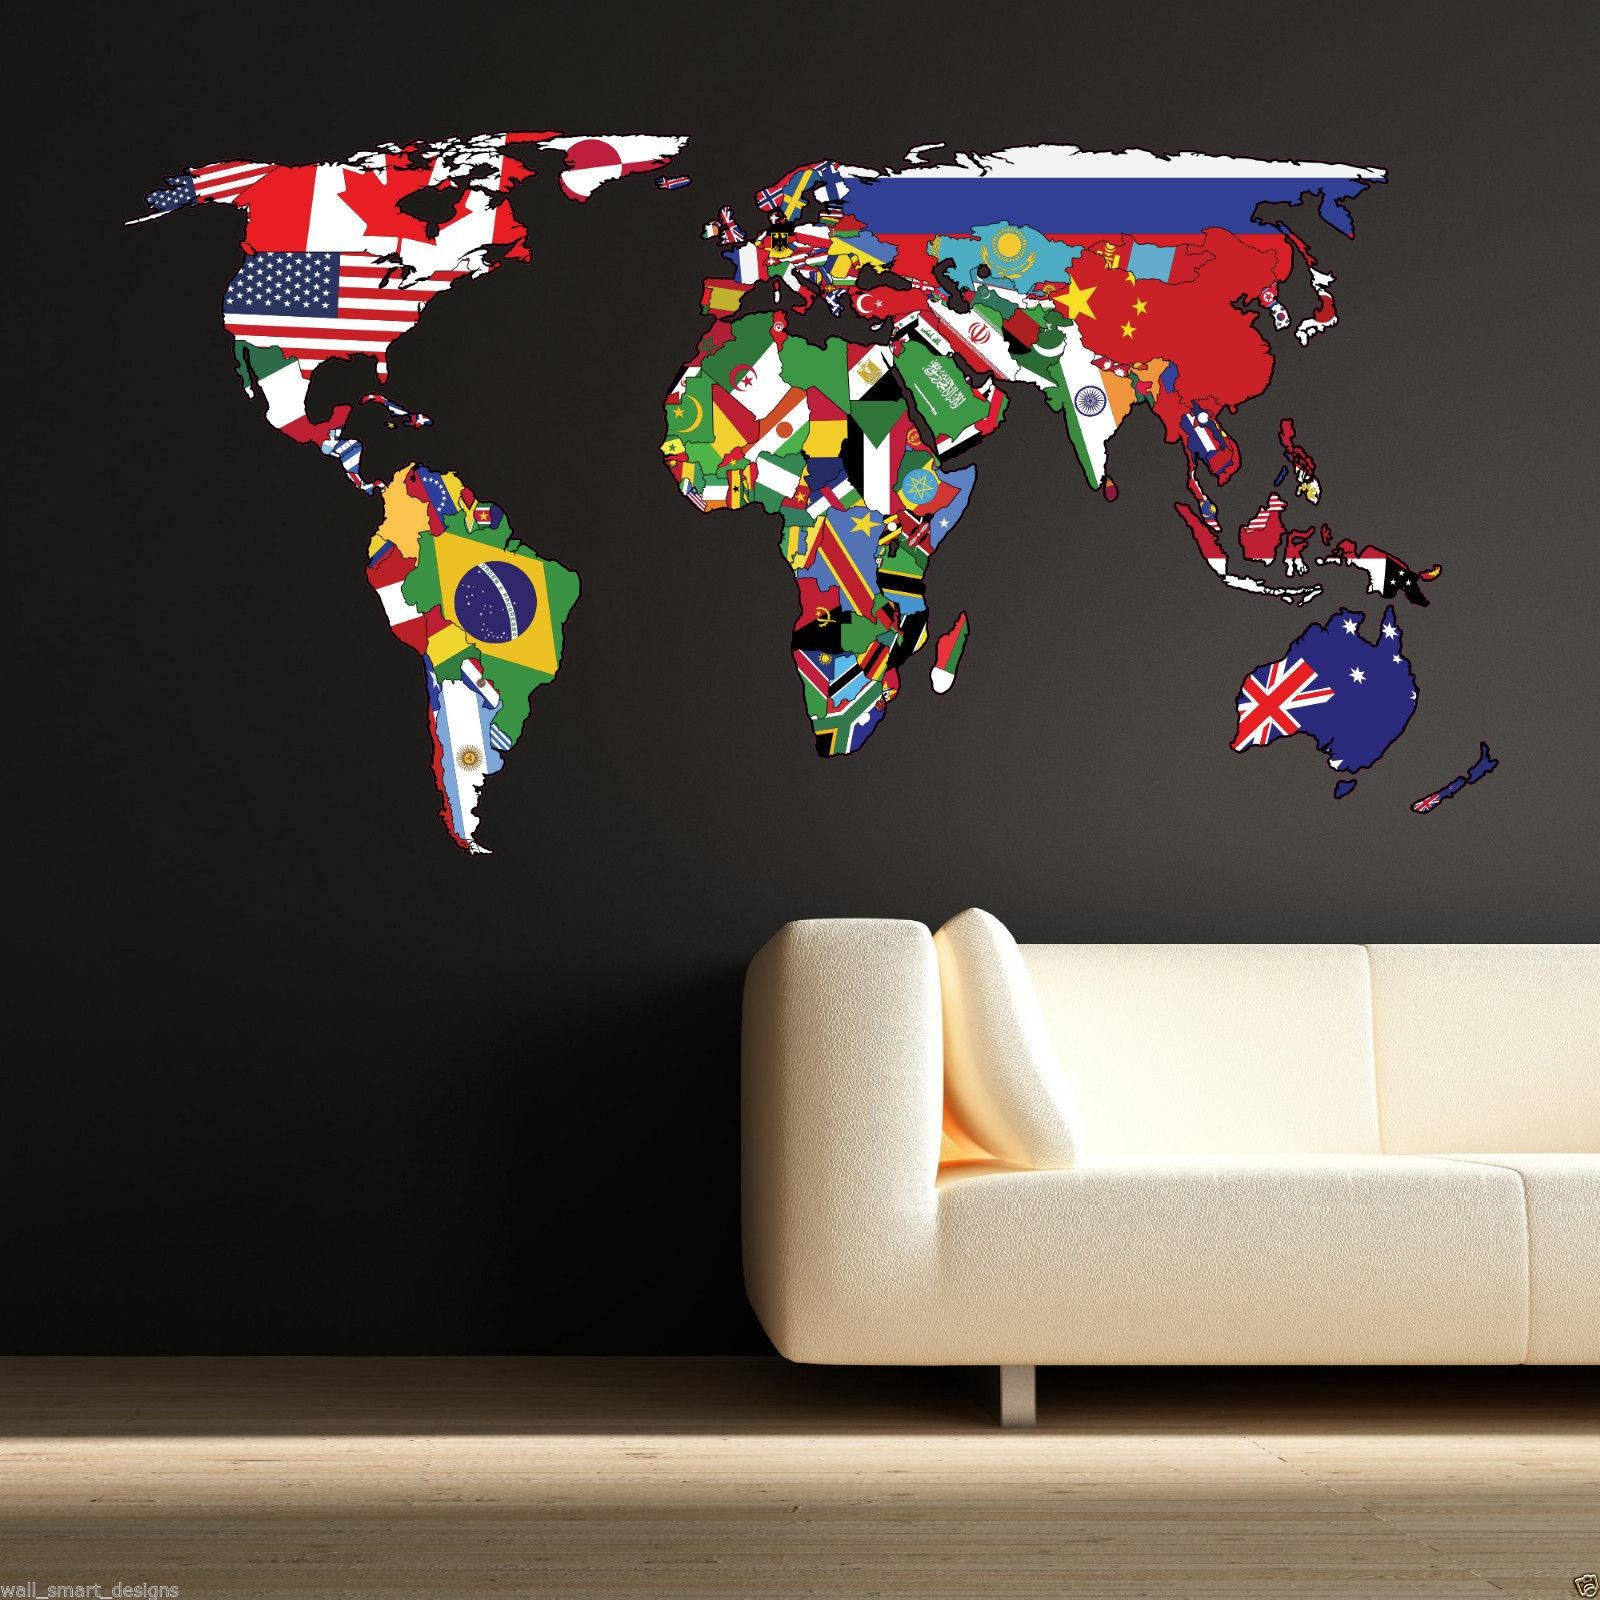 Atlas Wall Art – Wall Murals Ideas Within Most Up To Date Atlas Wall Art (View 16 of 20)